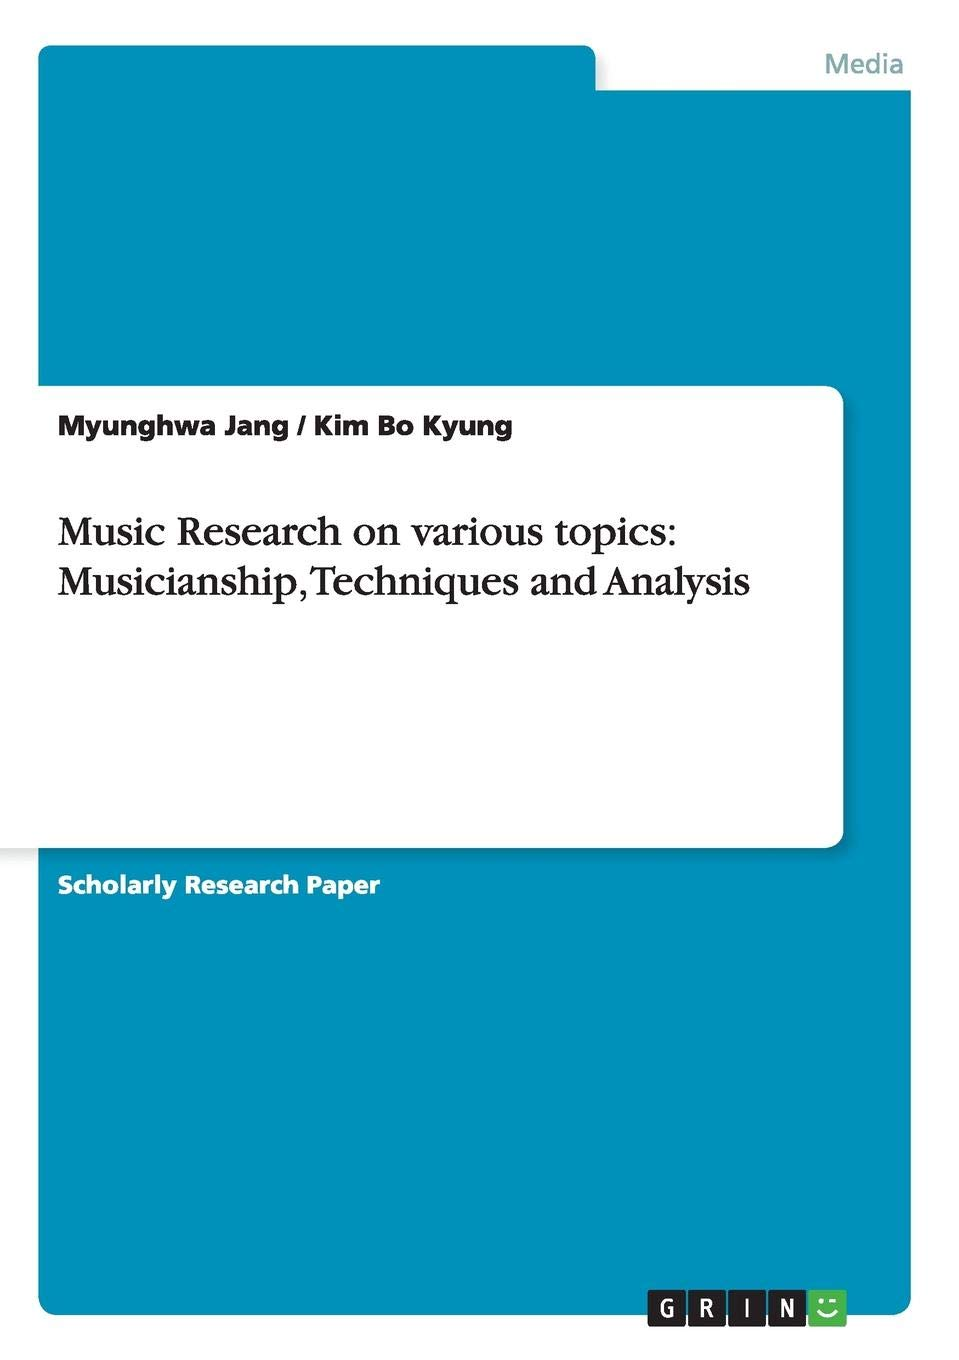 019 Popular Music Research Paper Topics Fantastic Related